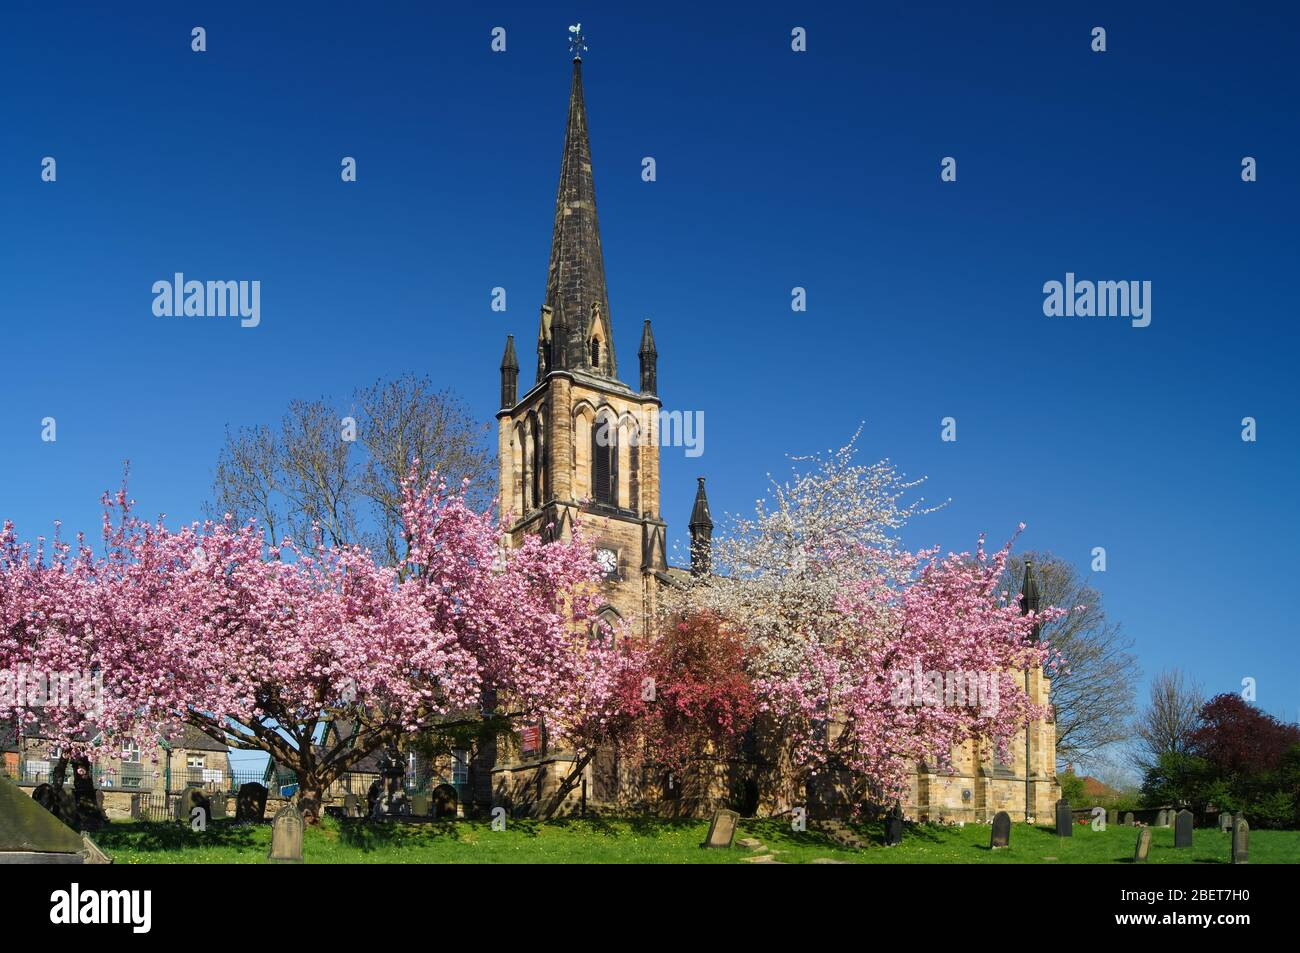 UK,South Yorkshire,Elsecar,Holy Trinity Parish Church in Spring with Cherry Blossom in full bloom Stock Photo